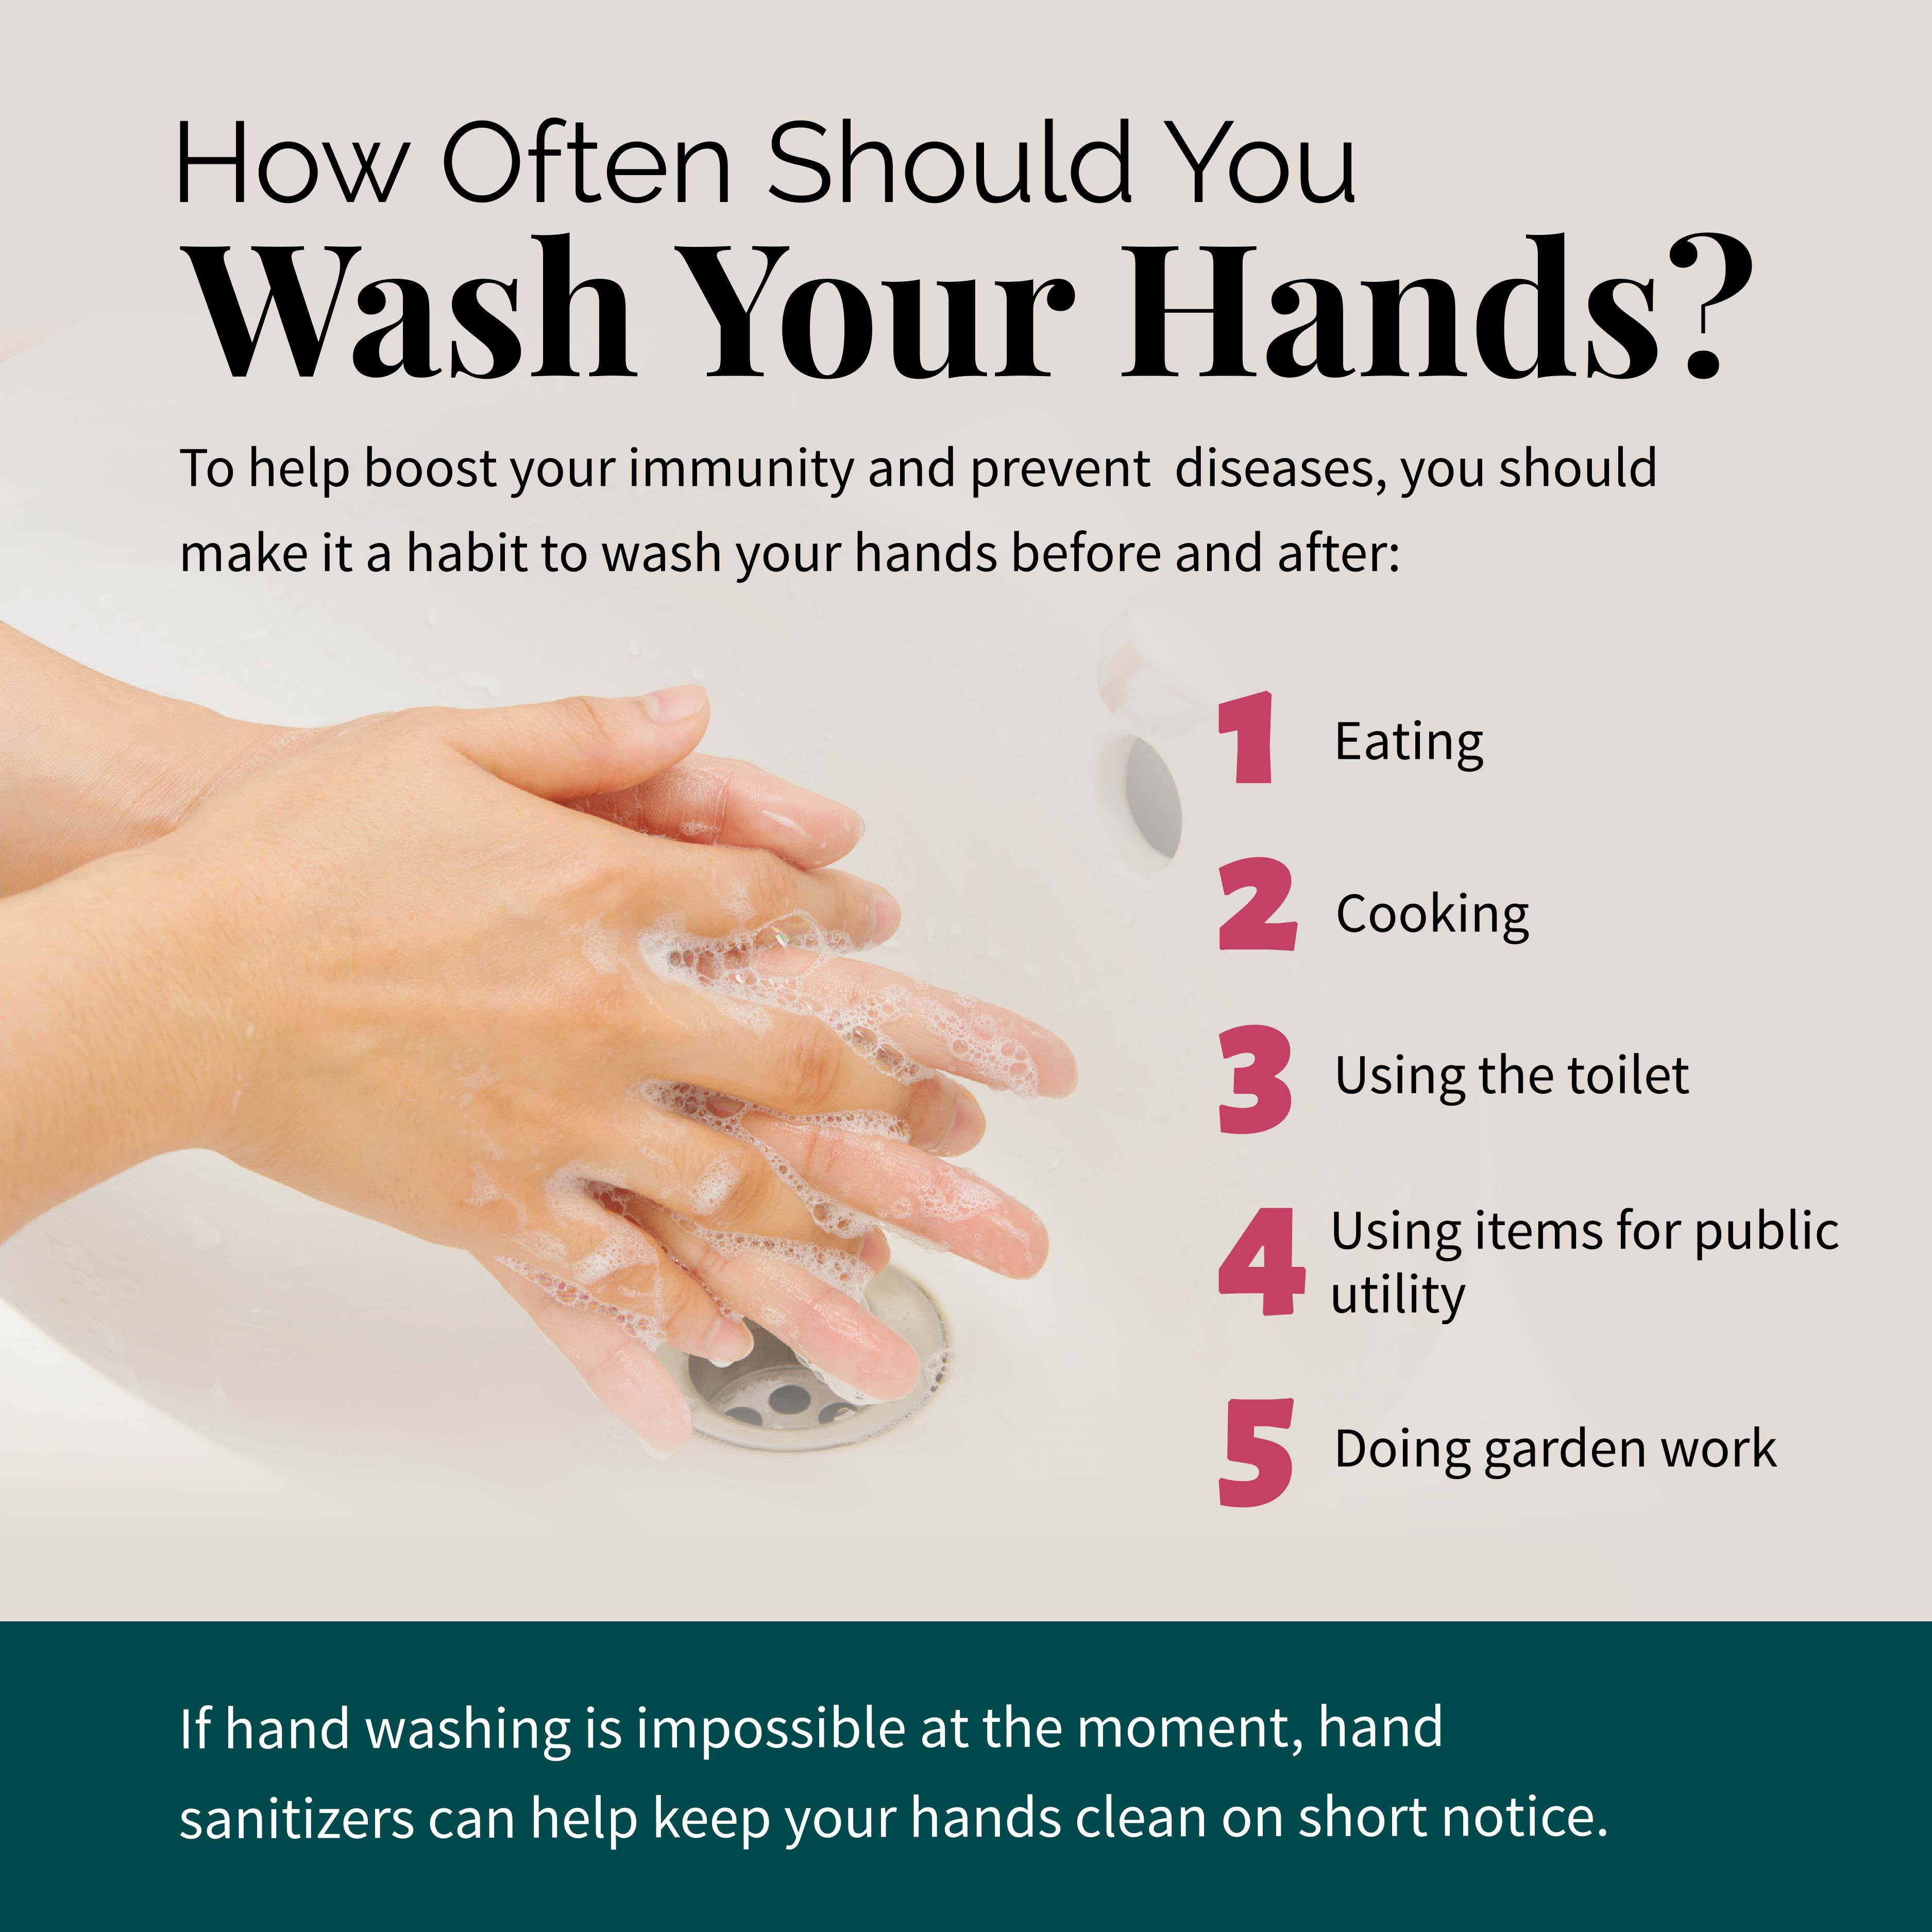 How Often Should You Wash Your Hands?